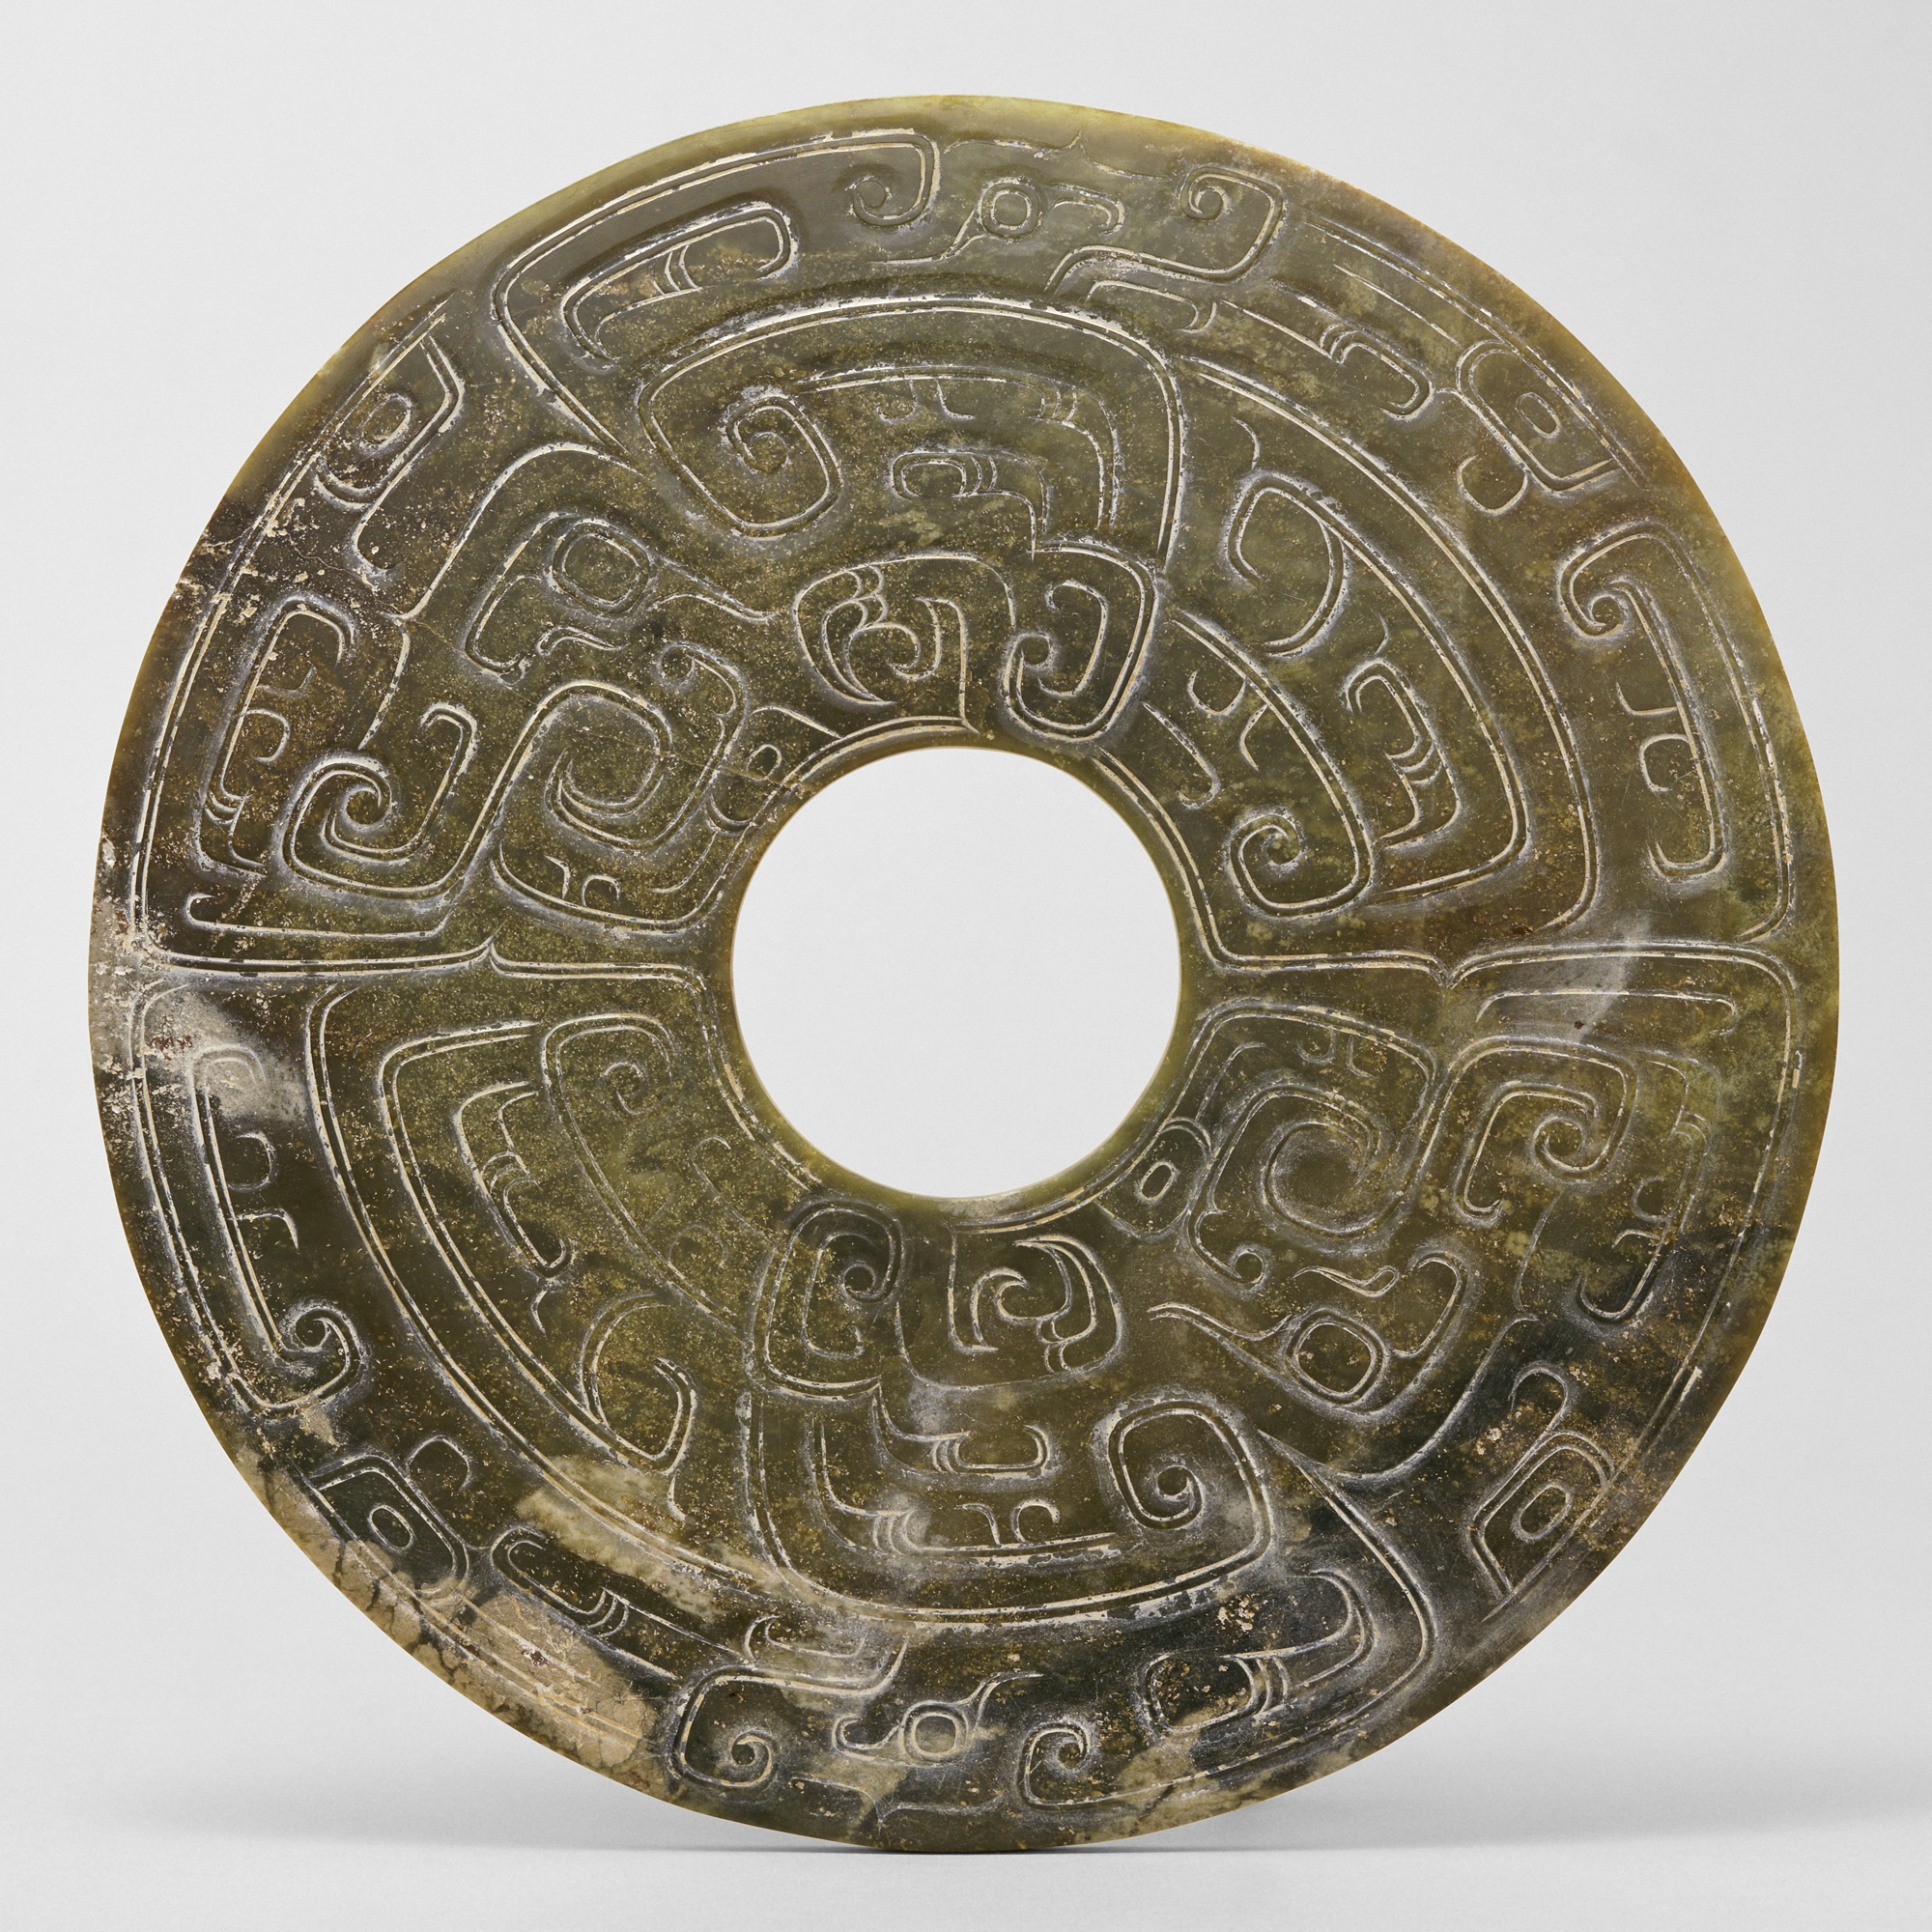 Object of the Week: Disc with dragon motif